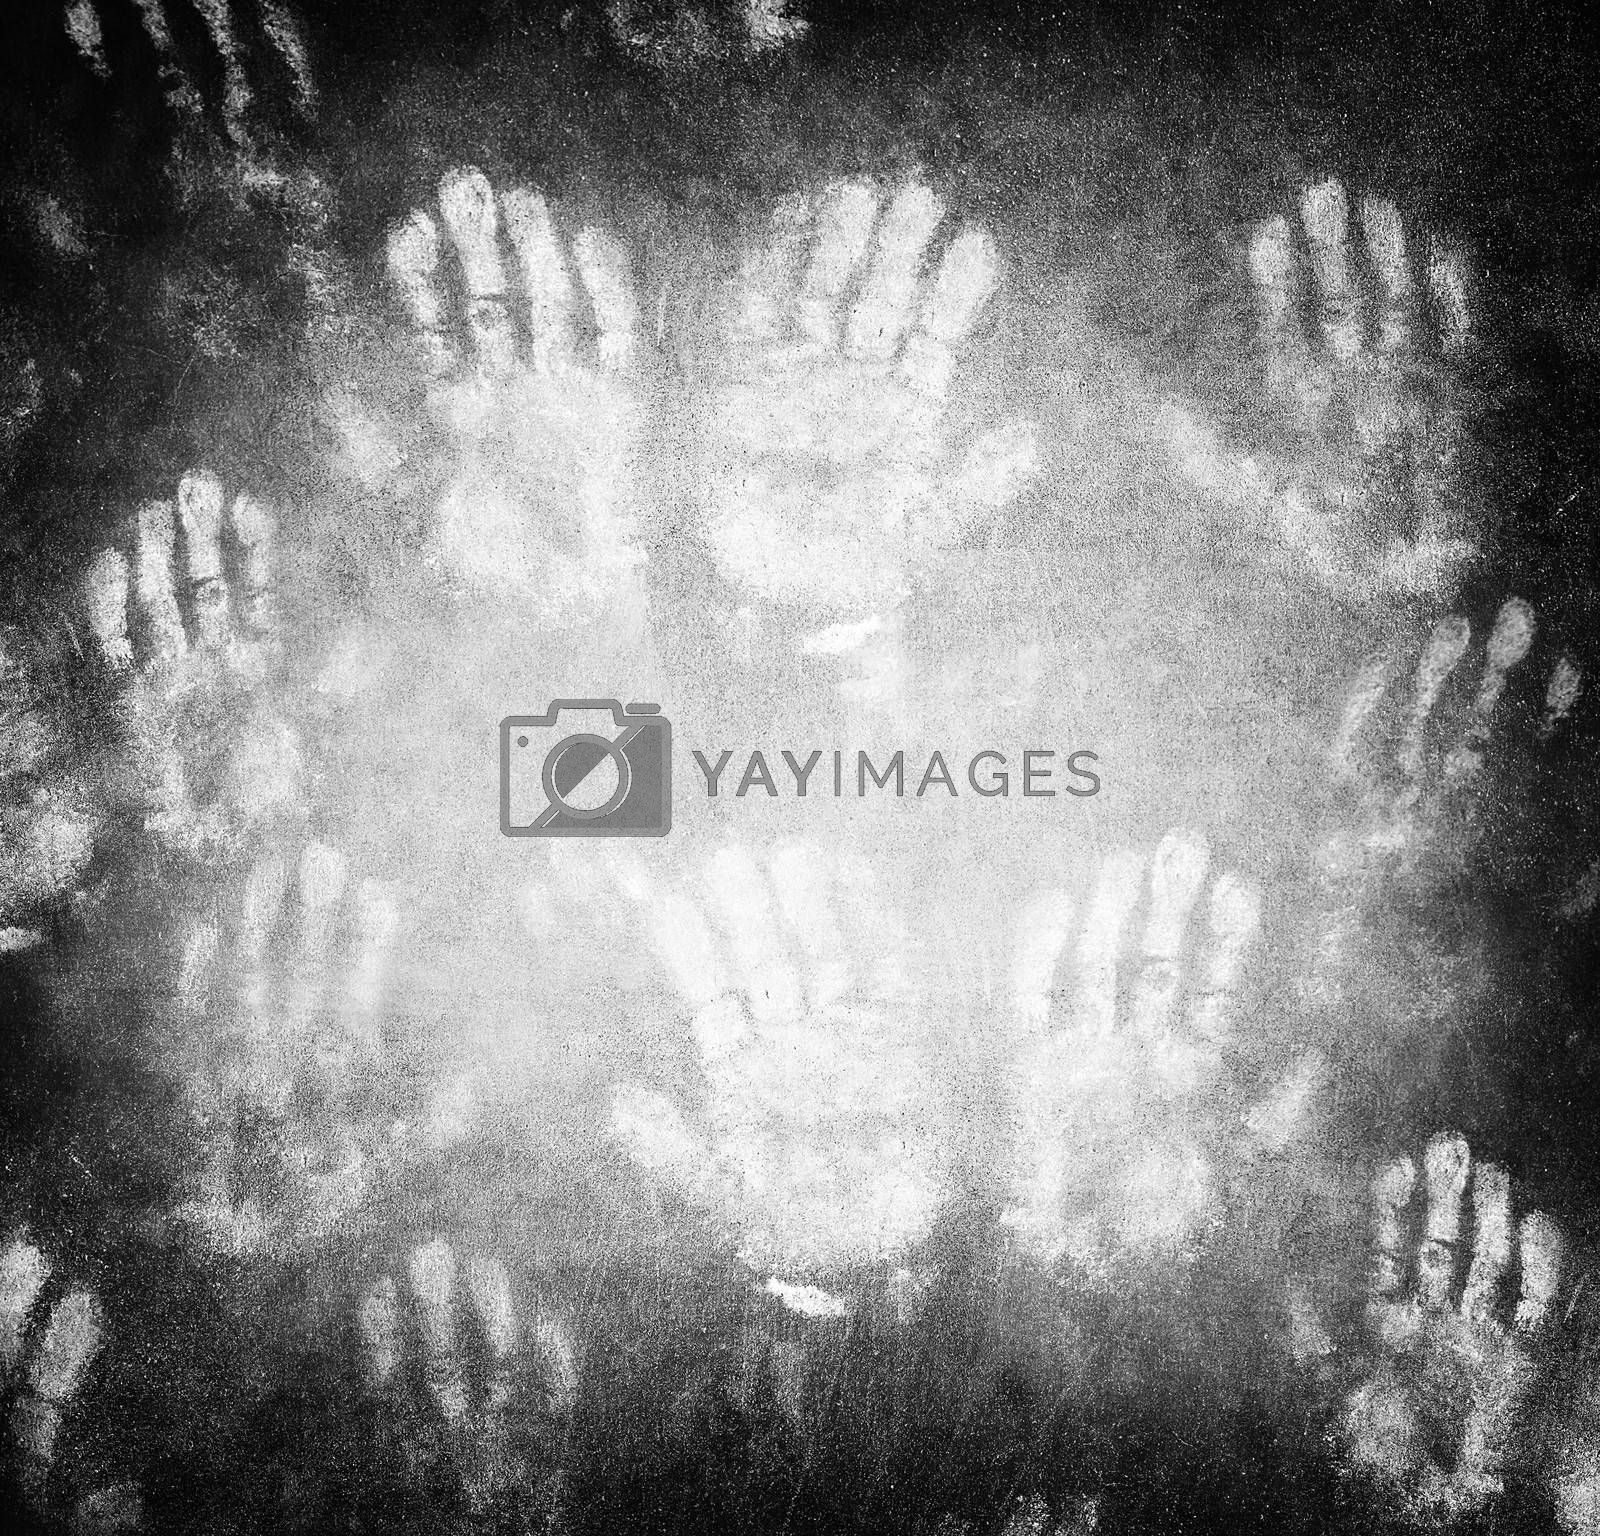 Imprint of human hands, black horror background, conceptual image of war and poverty, need help and protection concept